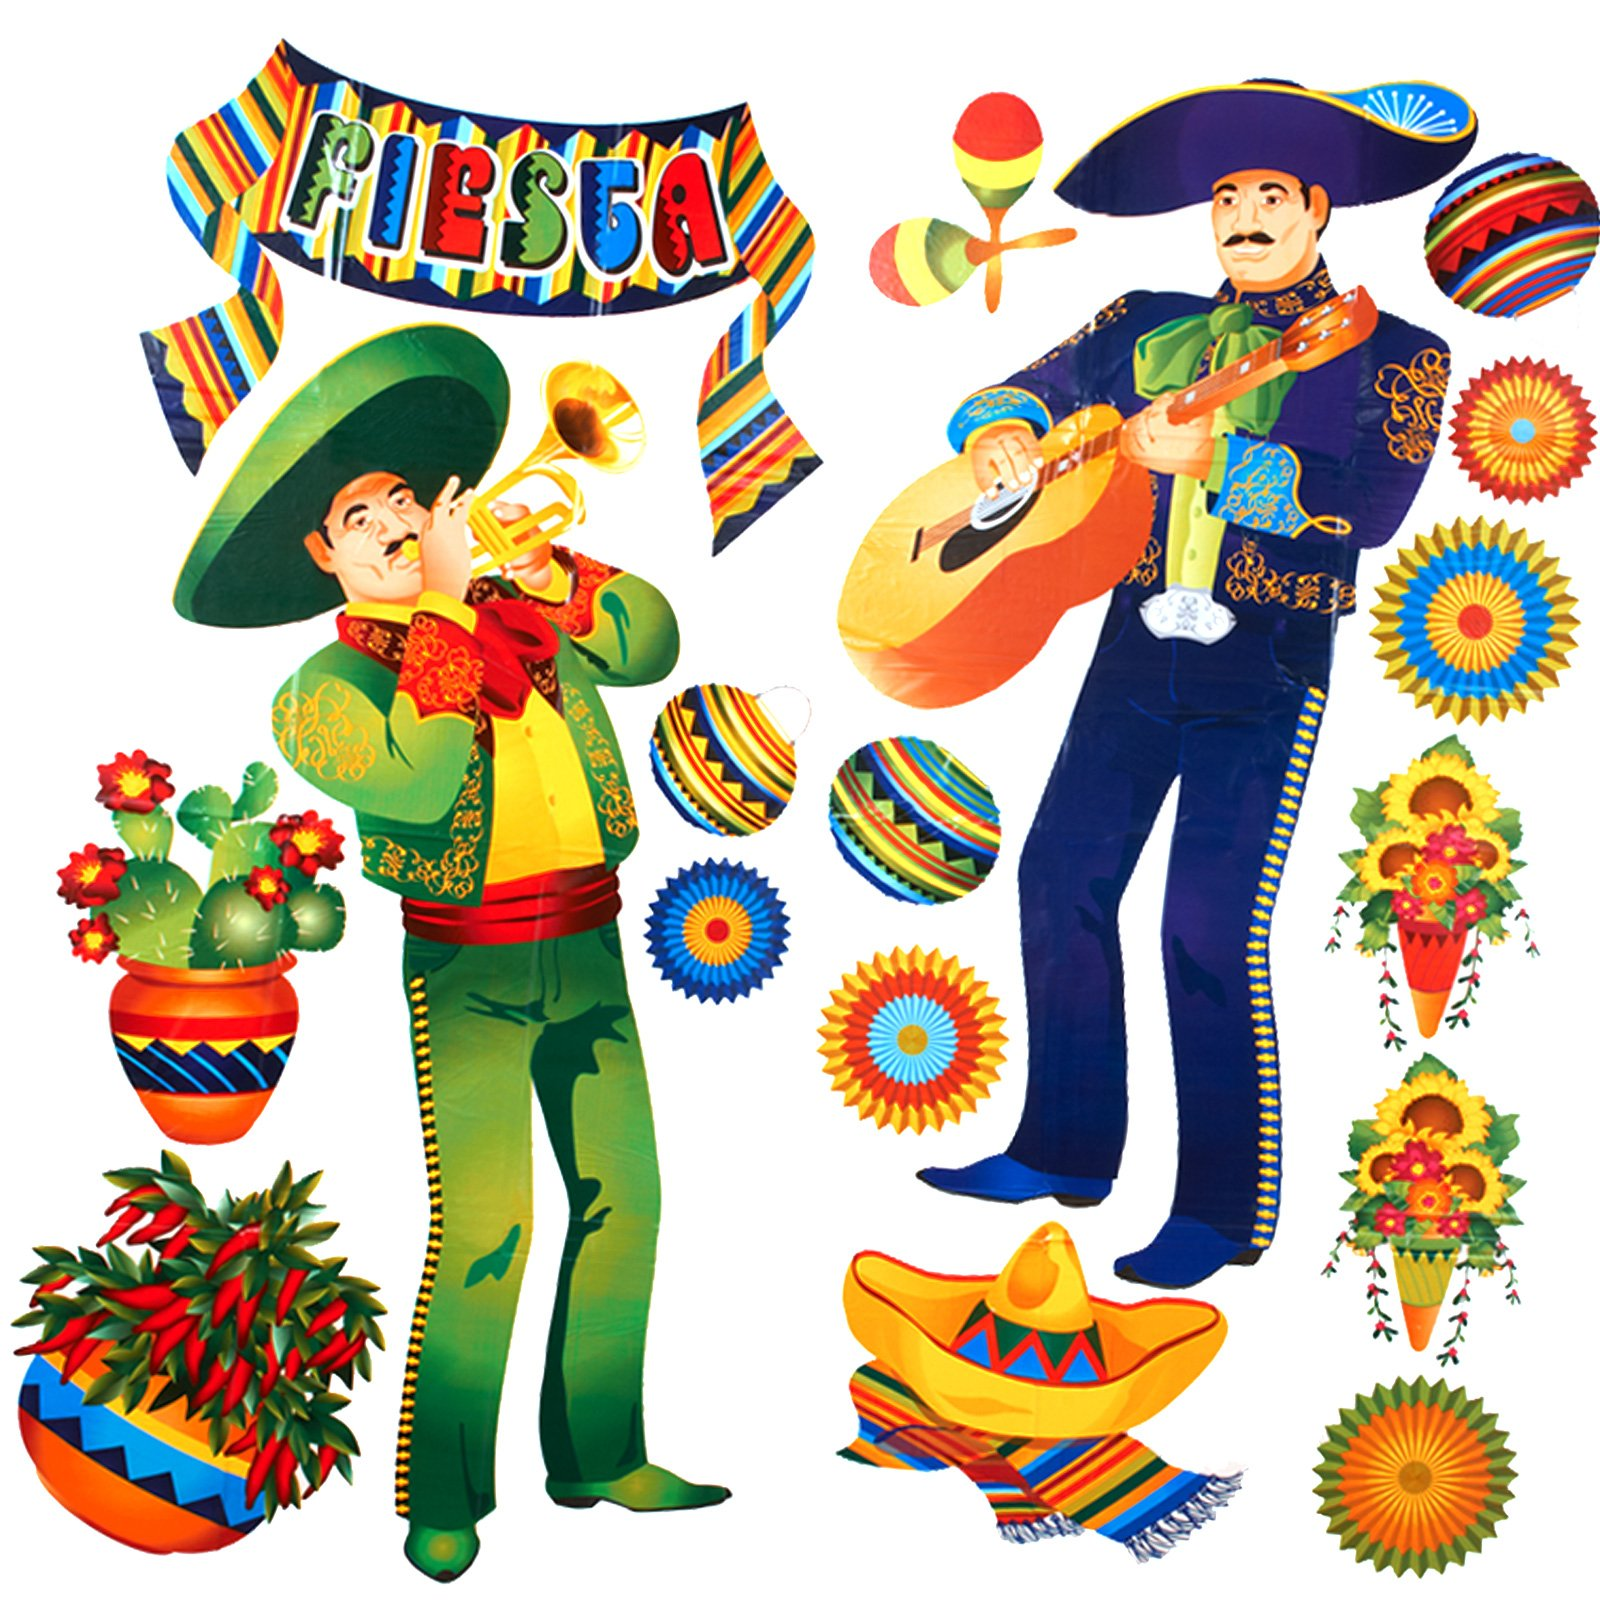 Fiesta clipart pictures graphic freeuse library Free Fiesta Cliparts, Download Free Clip Art, Free Clip Art on ... graphic freeuse library